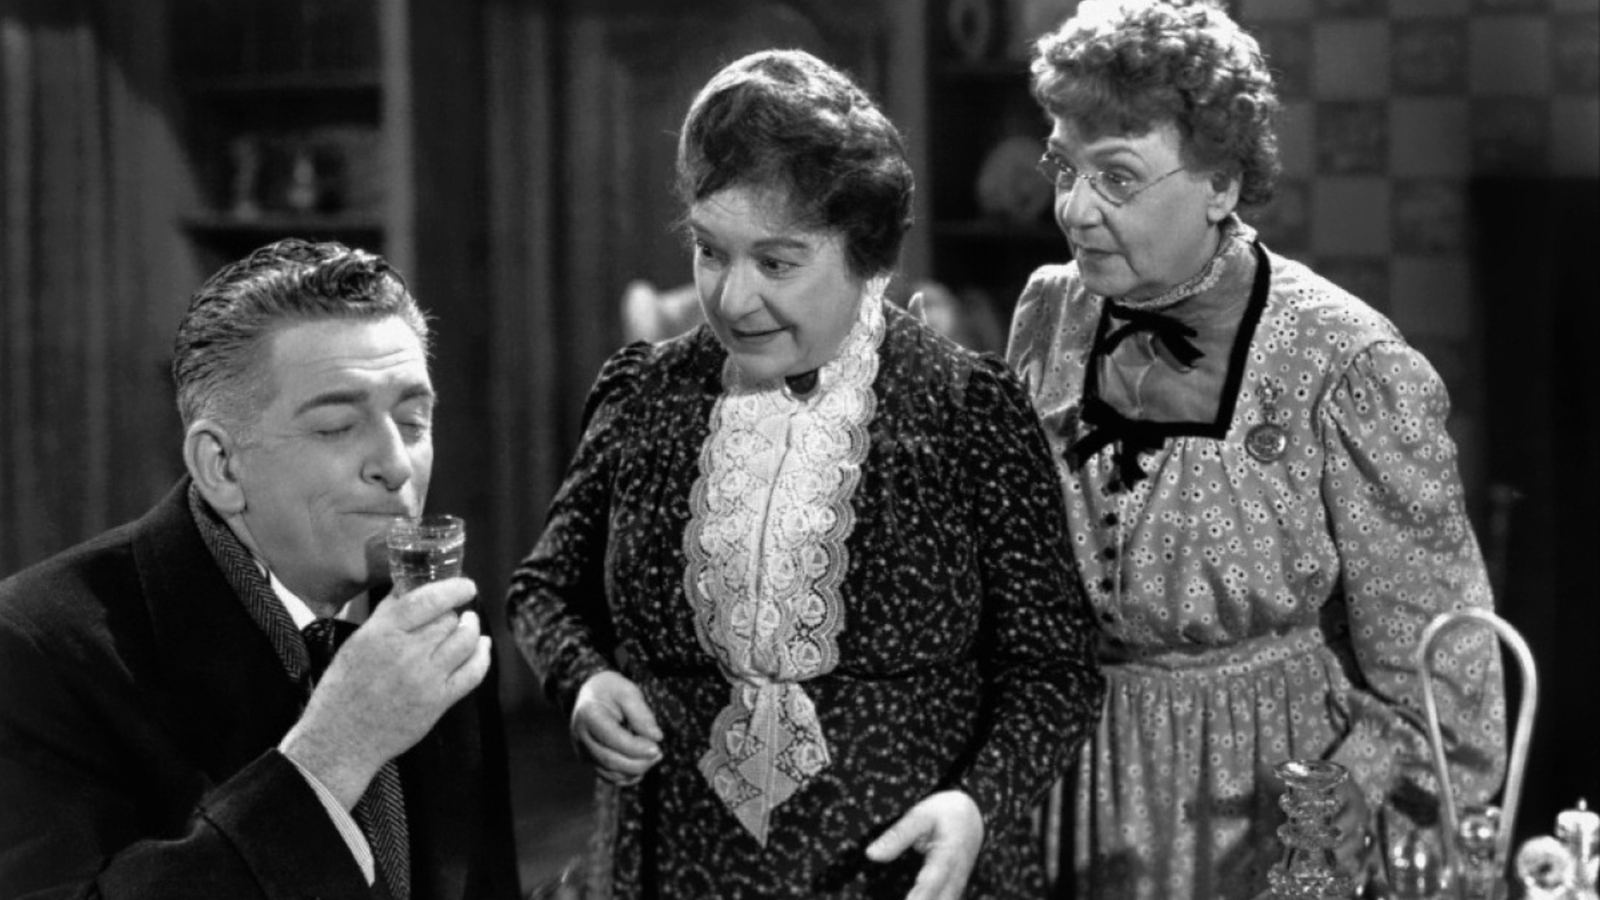 #77) Arsenic and Old Lace - (1944 - dir. Frank Capra)